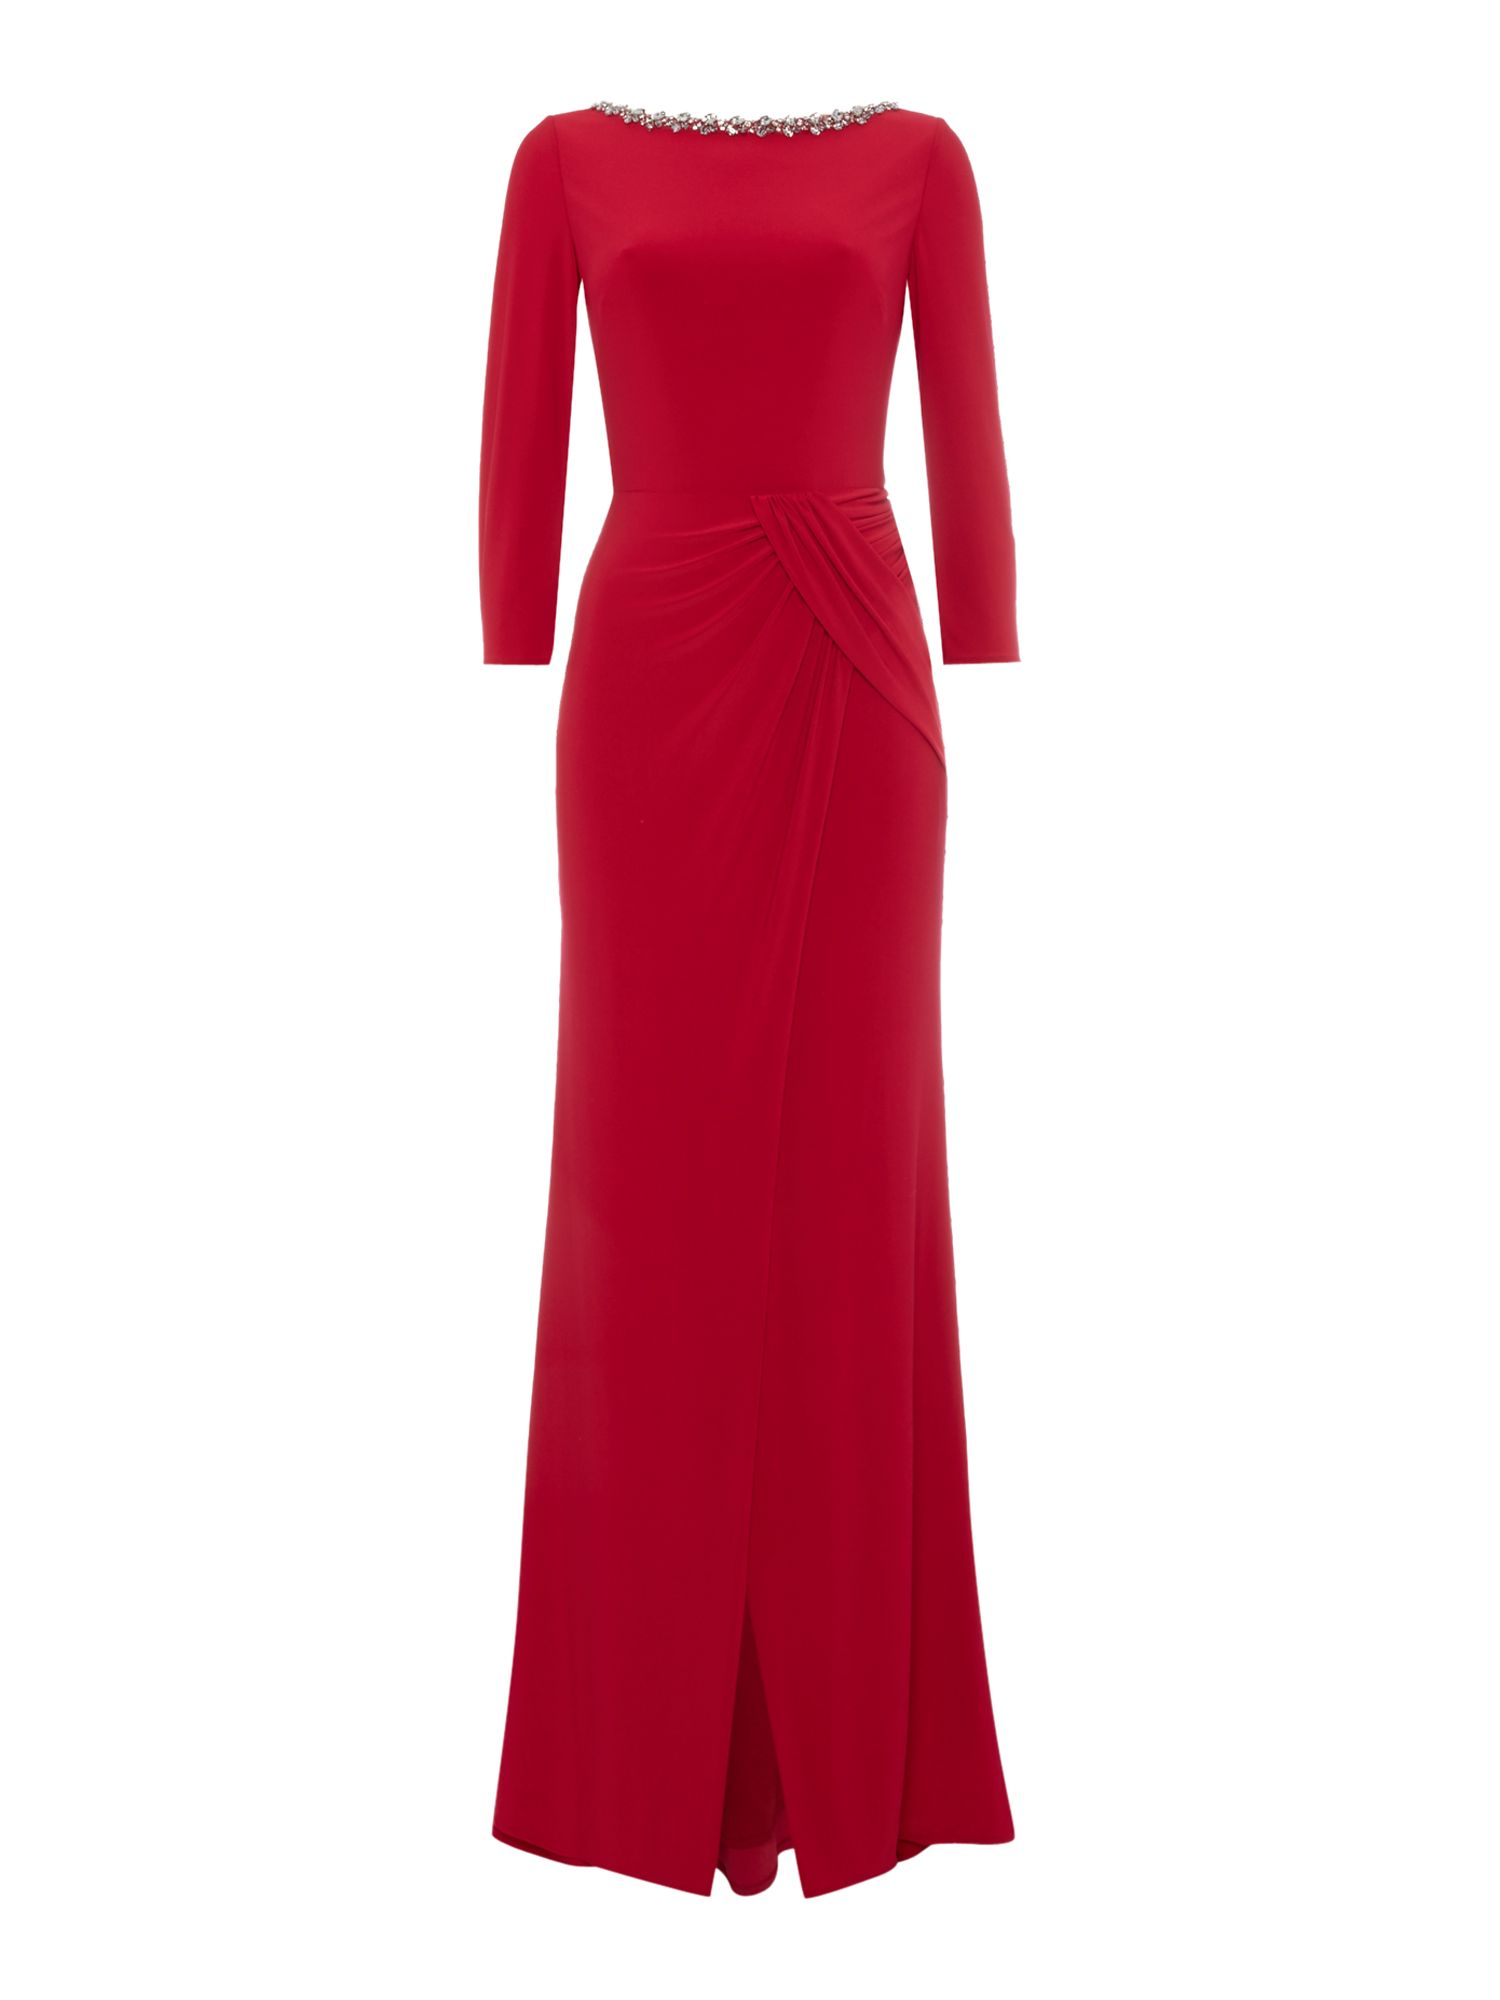 Js Collections JS Collections 3/4 sleeve dress with necklace detail, Red